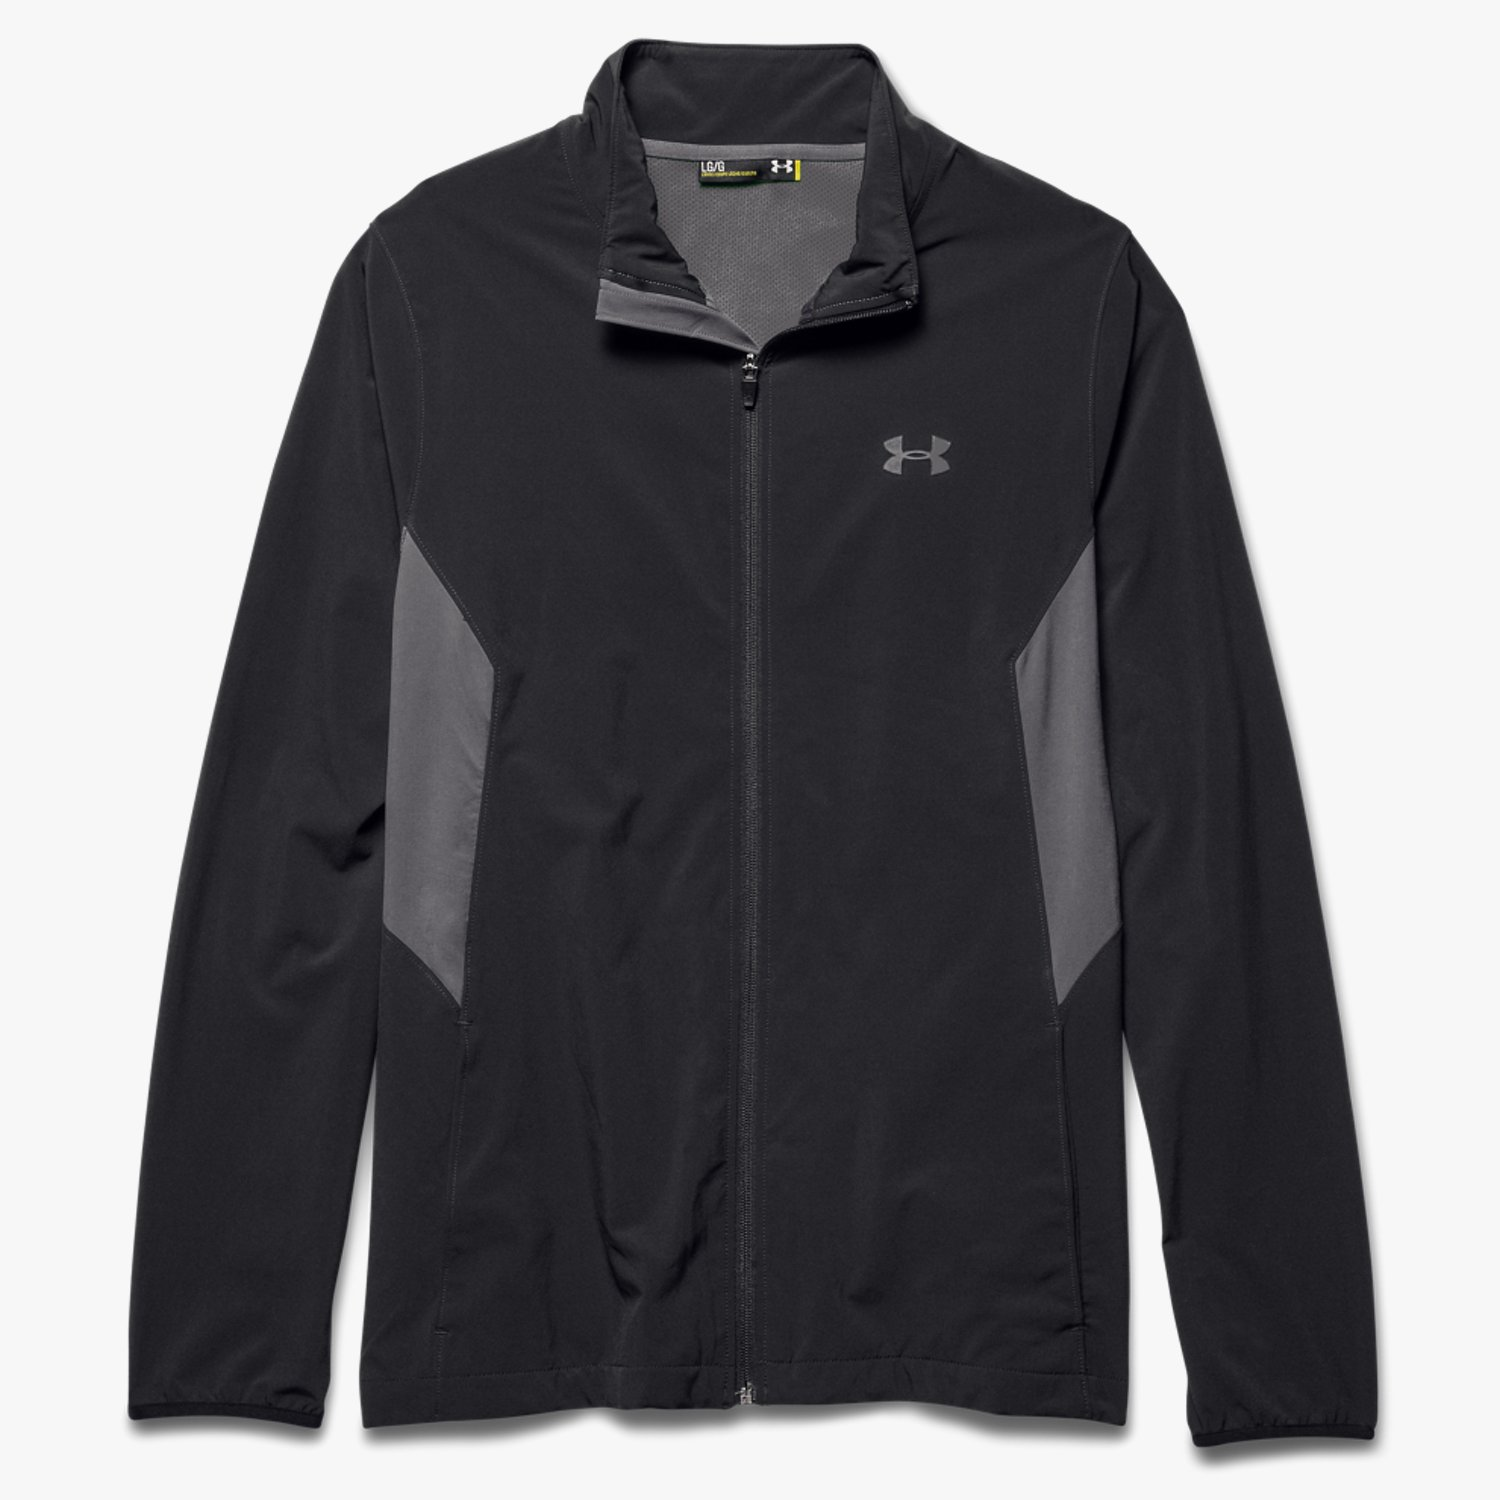 Under Armour UA Pulse Warm-Up Jacket Black/Graphite/Graphite-30